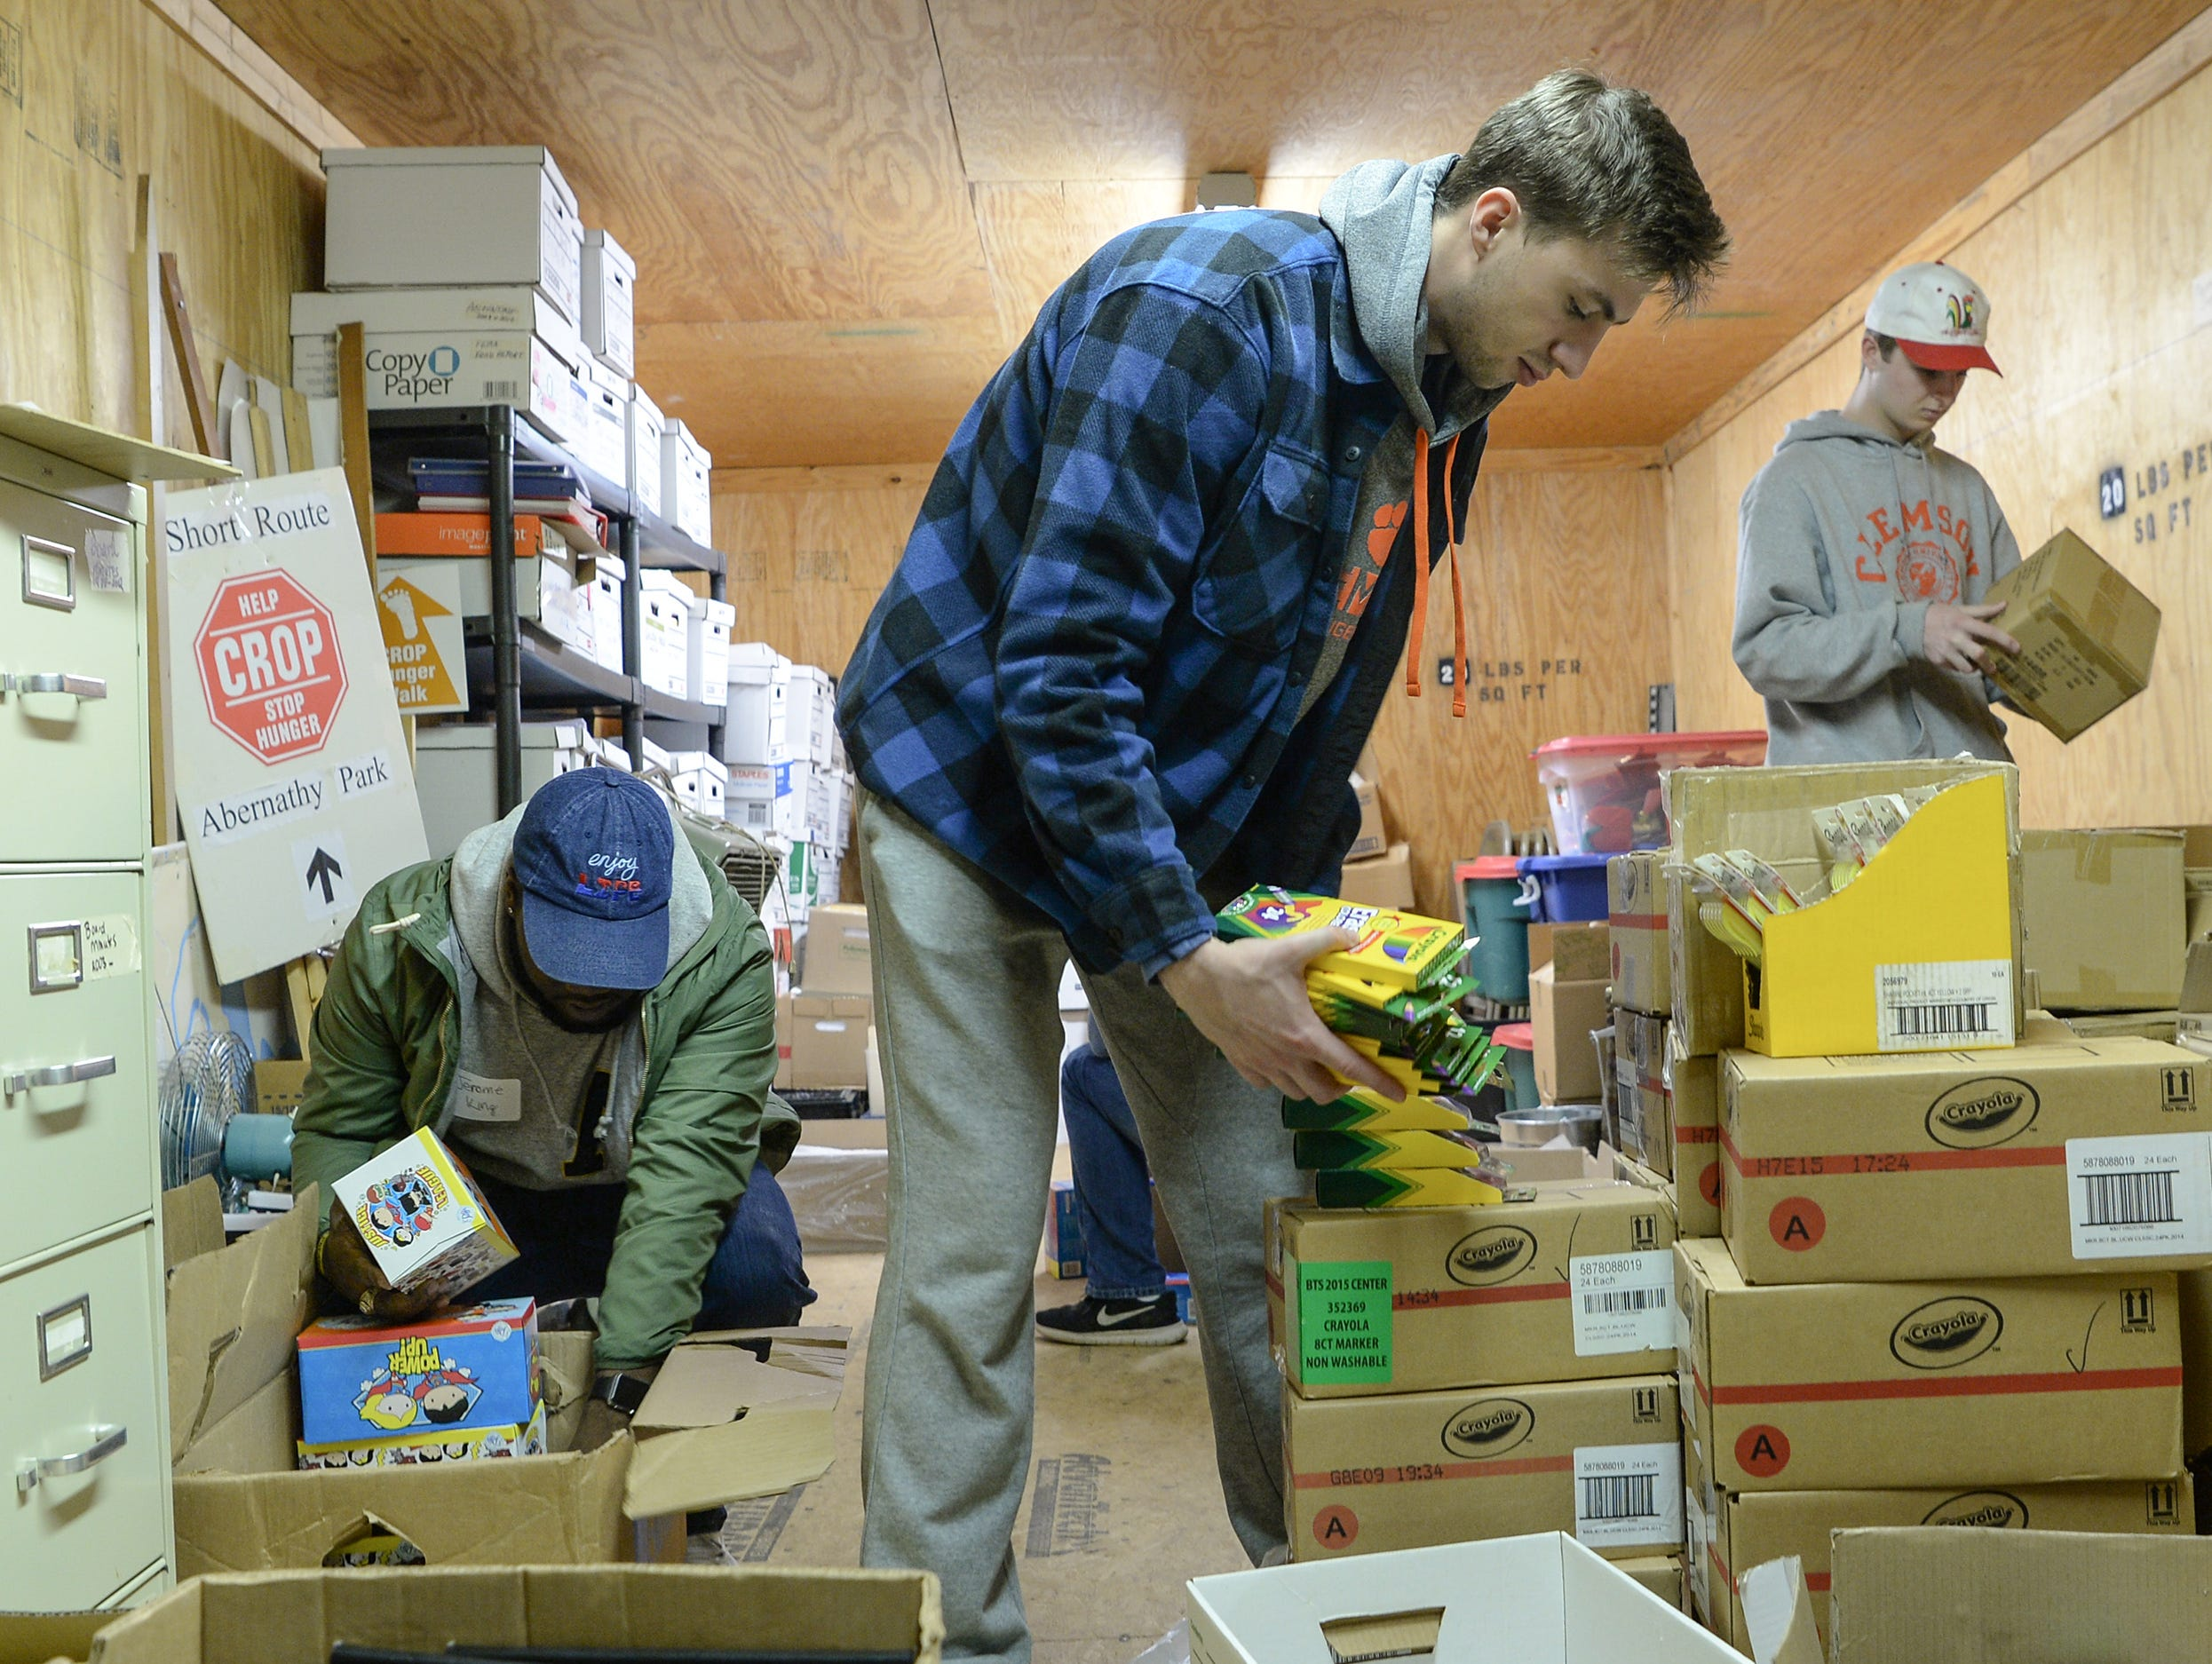 Jerome King, left, of Alpha Phi Alpha fraternity joins Phi Gamma Delta fraternity volunteers Dayne Hughes, middle organize school supplies at Clemson Community Care, during the Clemson University Martin Luther King, Jr. Service Day in Clemson January 21, 2019.